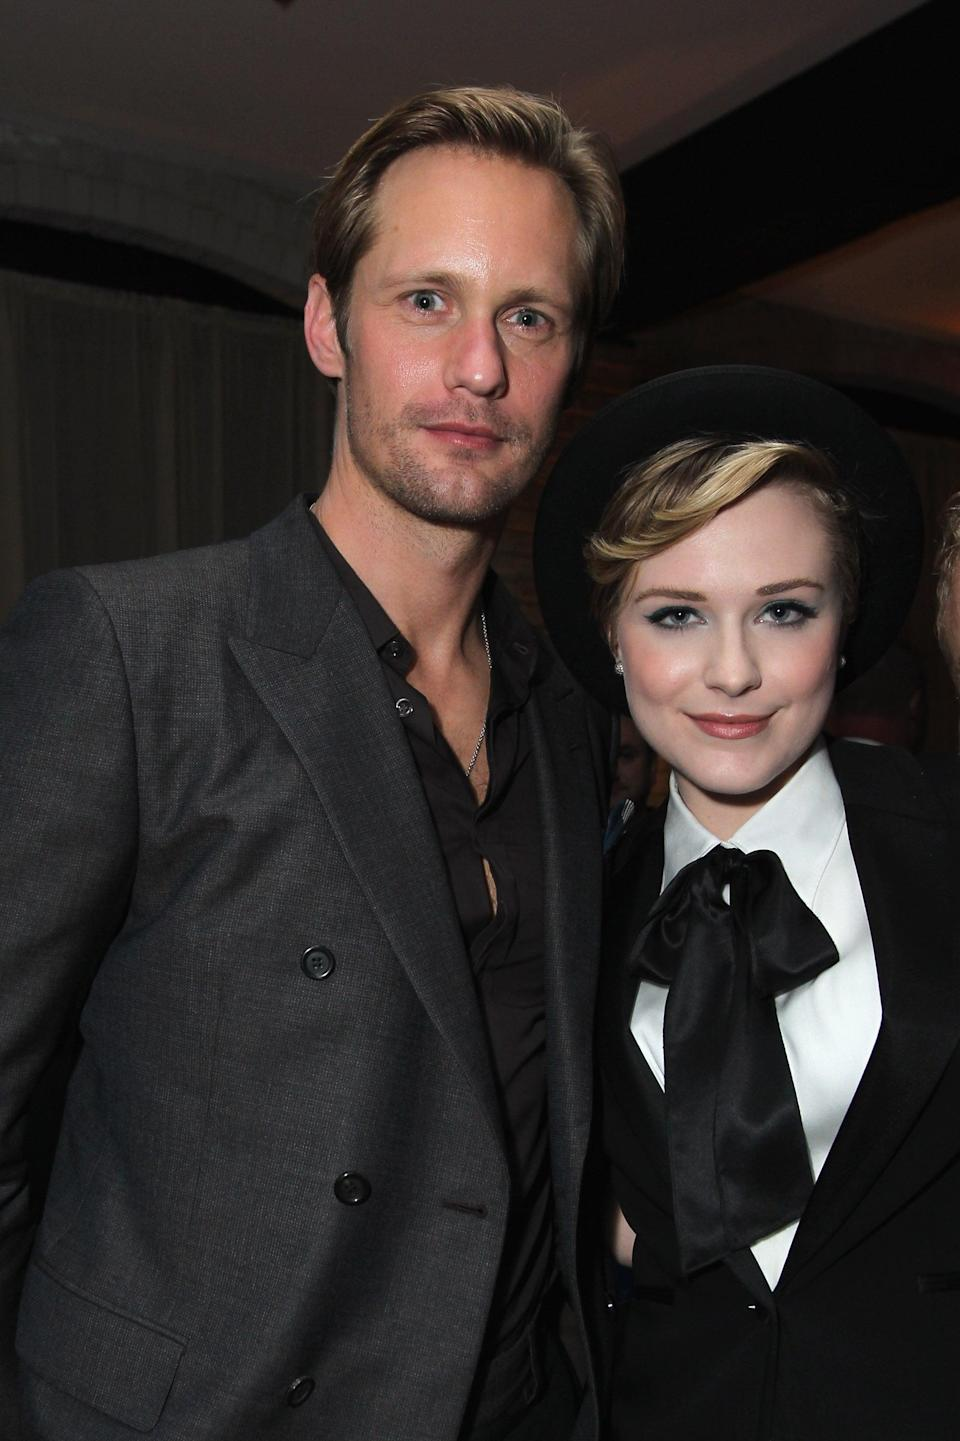 """<p>Back in 2009, rumors abounded that <strong>True Blood</strong> costars Wood and Skarsgård were romantically involved. Neither confirmed it at the time, but in 2010, Wood obliquely admitted to it in an interview with <strong>E! News</strong>.</p> <p>""""God, that [<strong>True Blood</strong>] set is just a lovefest over there,"""" she revealed. """"I've even been there myself. <a href=""""http://www.eonline.com/news/208407/evan-rachel-wood-confirms-skarsg-rd-romance-now-crushing-on-ryan-gosling#ixzz142upDo7F"""" class=""""link rapid-noclick-resp"""" rel=""""nofollow noopener"""" target=""""_blank"""" data-ylk=""""slk:I did date one of the castmembers already"""">I did date one of the castmembers already</a>."""" While not mentioning Skarsgård's name, it did certainly sound like a reference to the rumors from the previous year.<br></p>"""